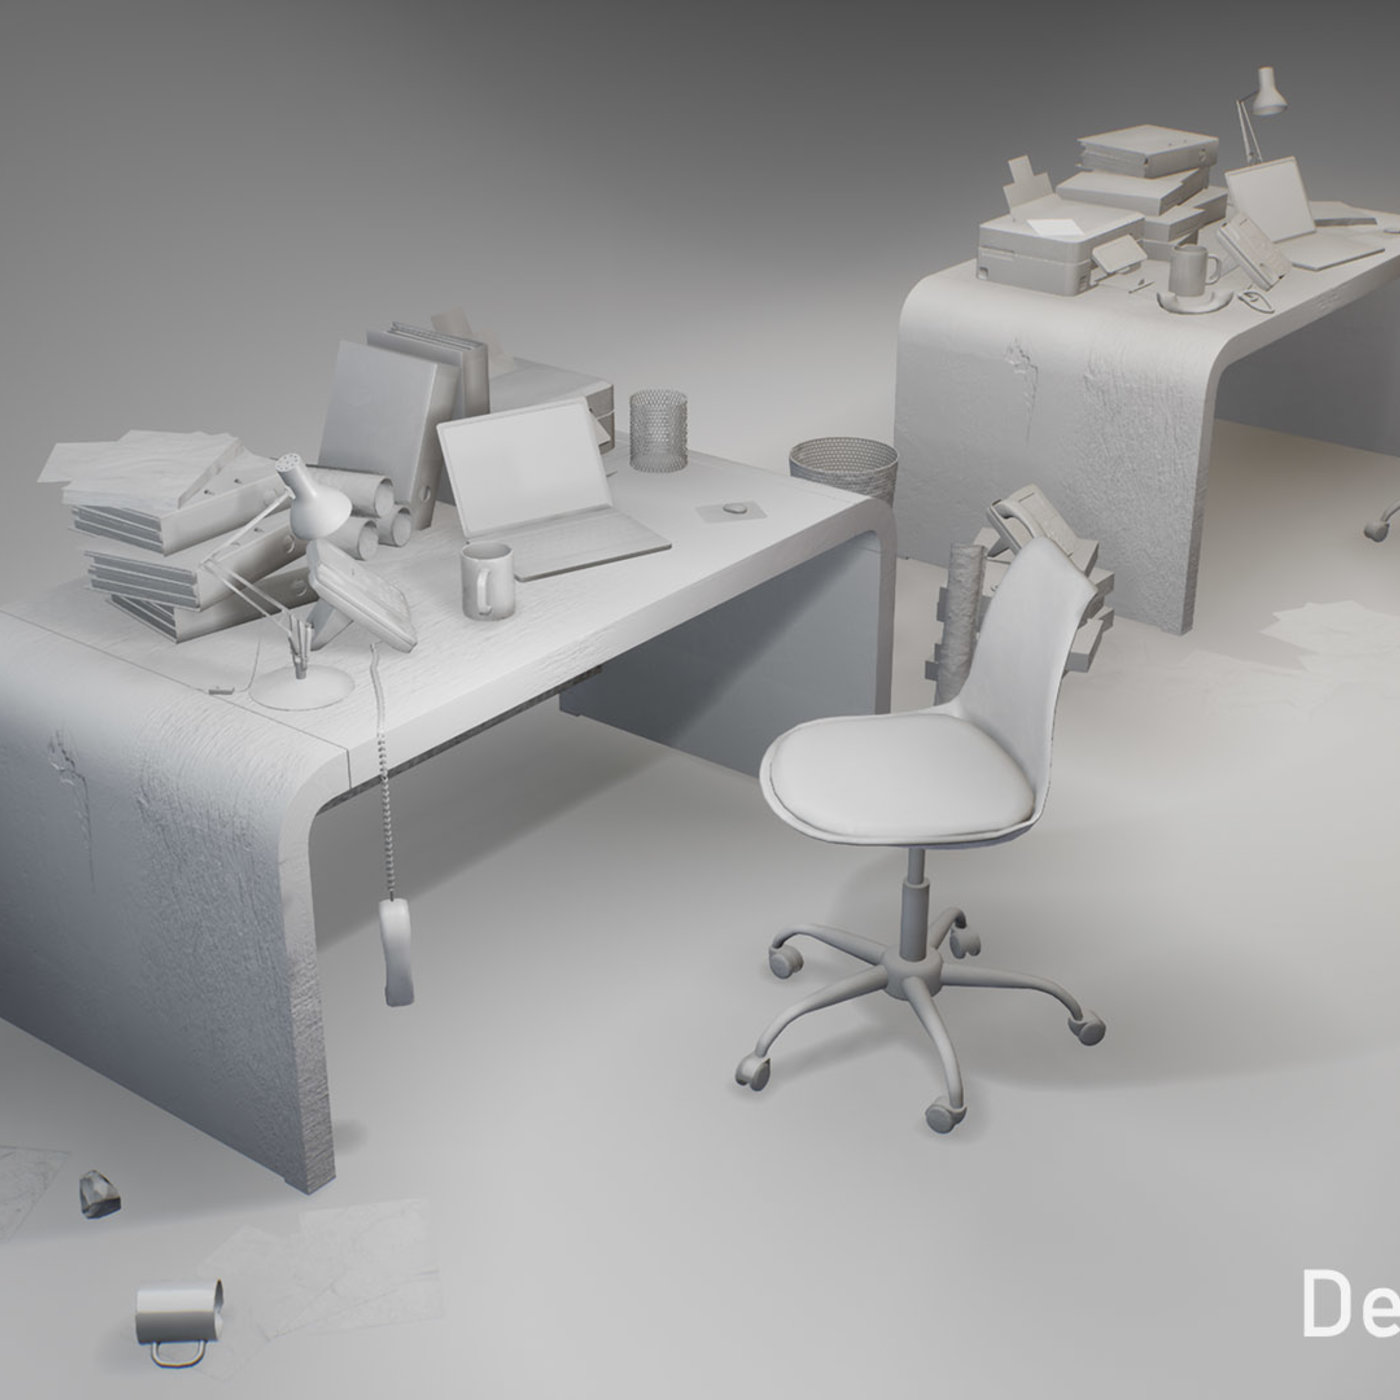 Post-apocalyptic office